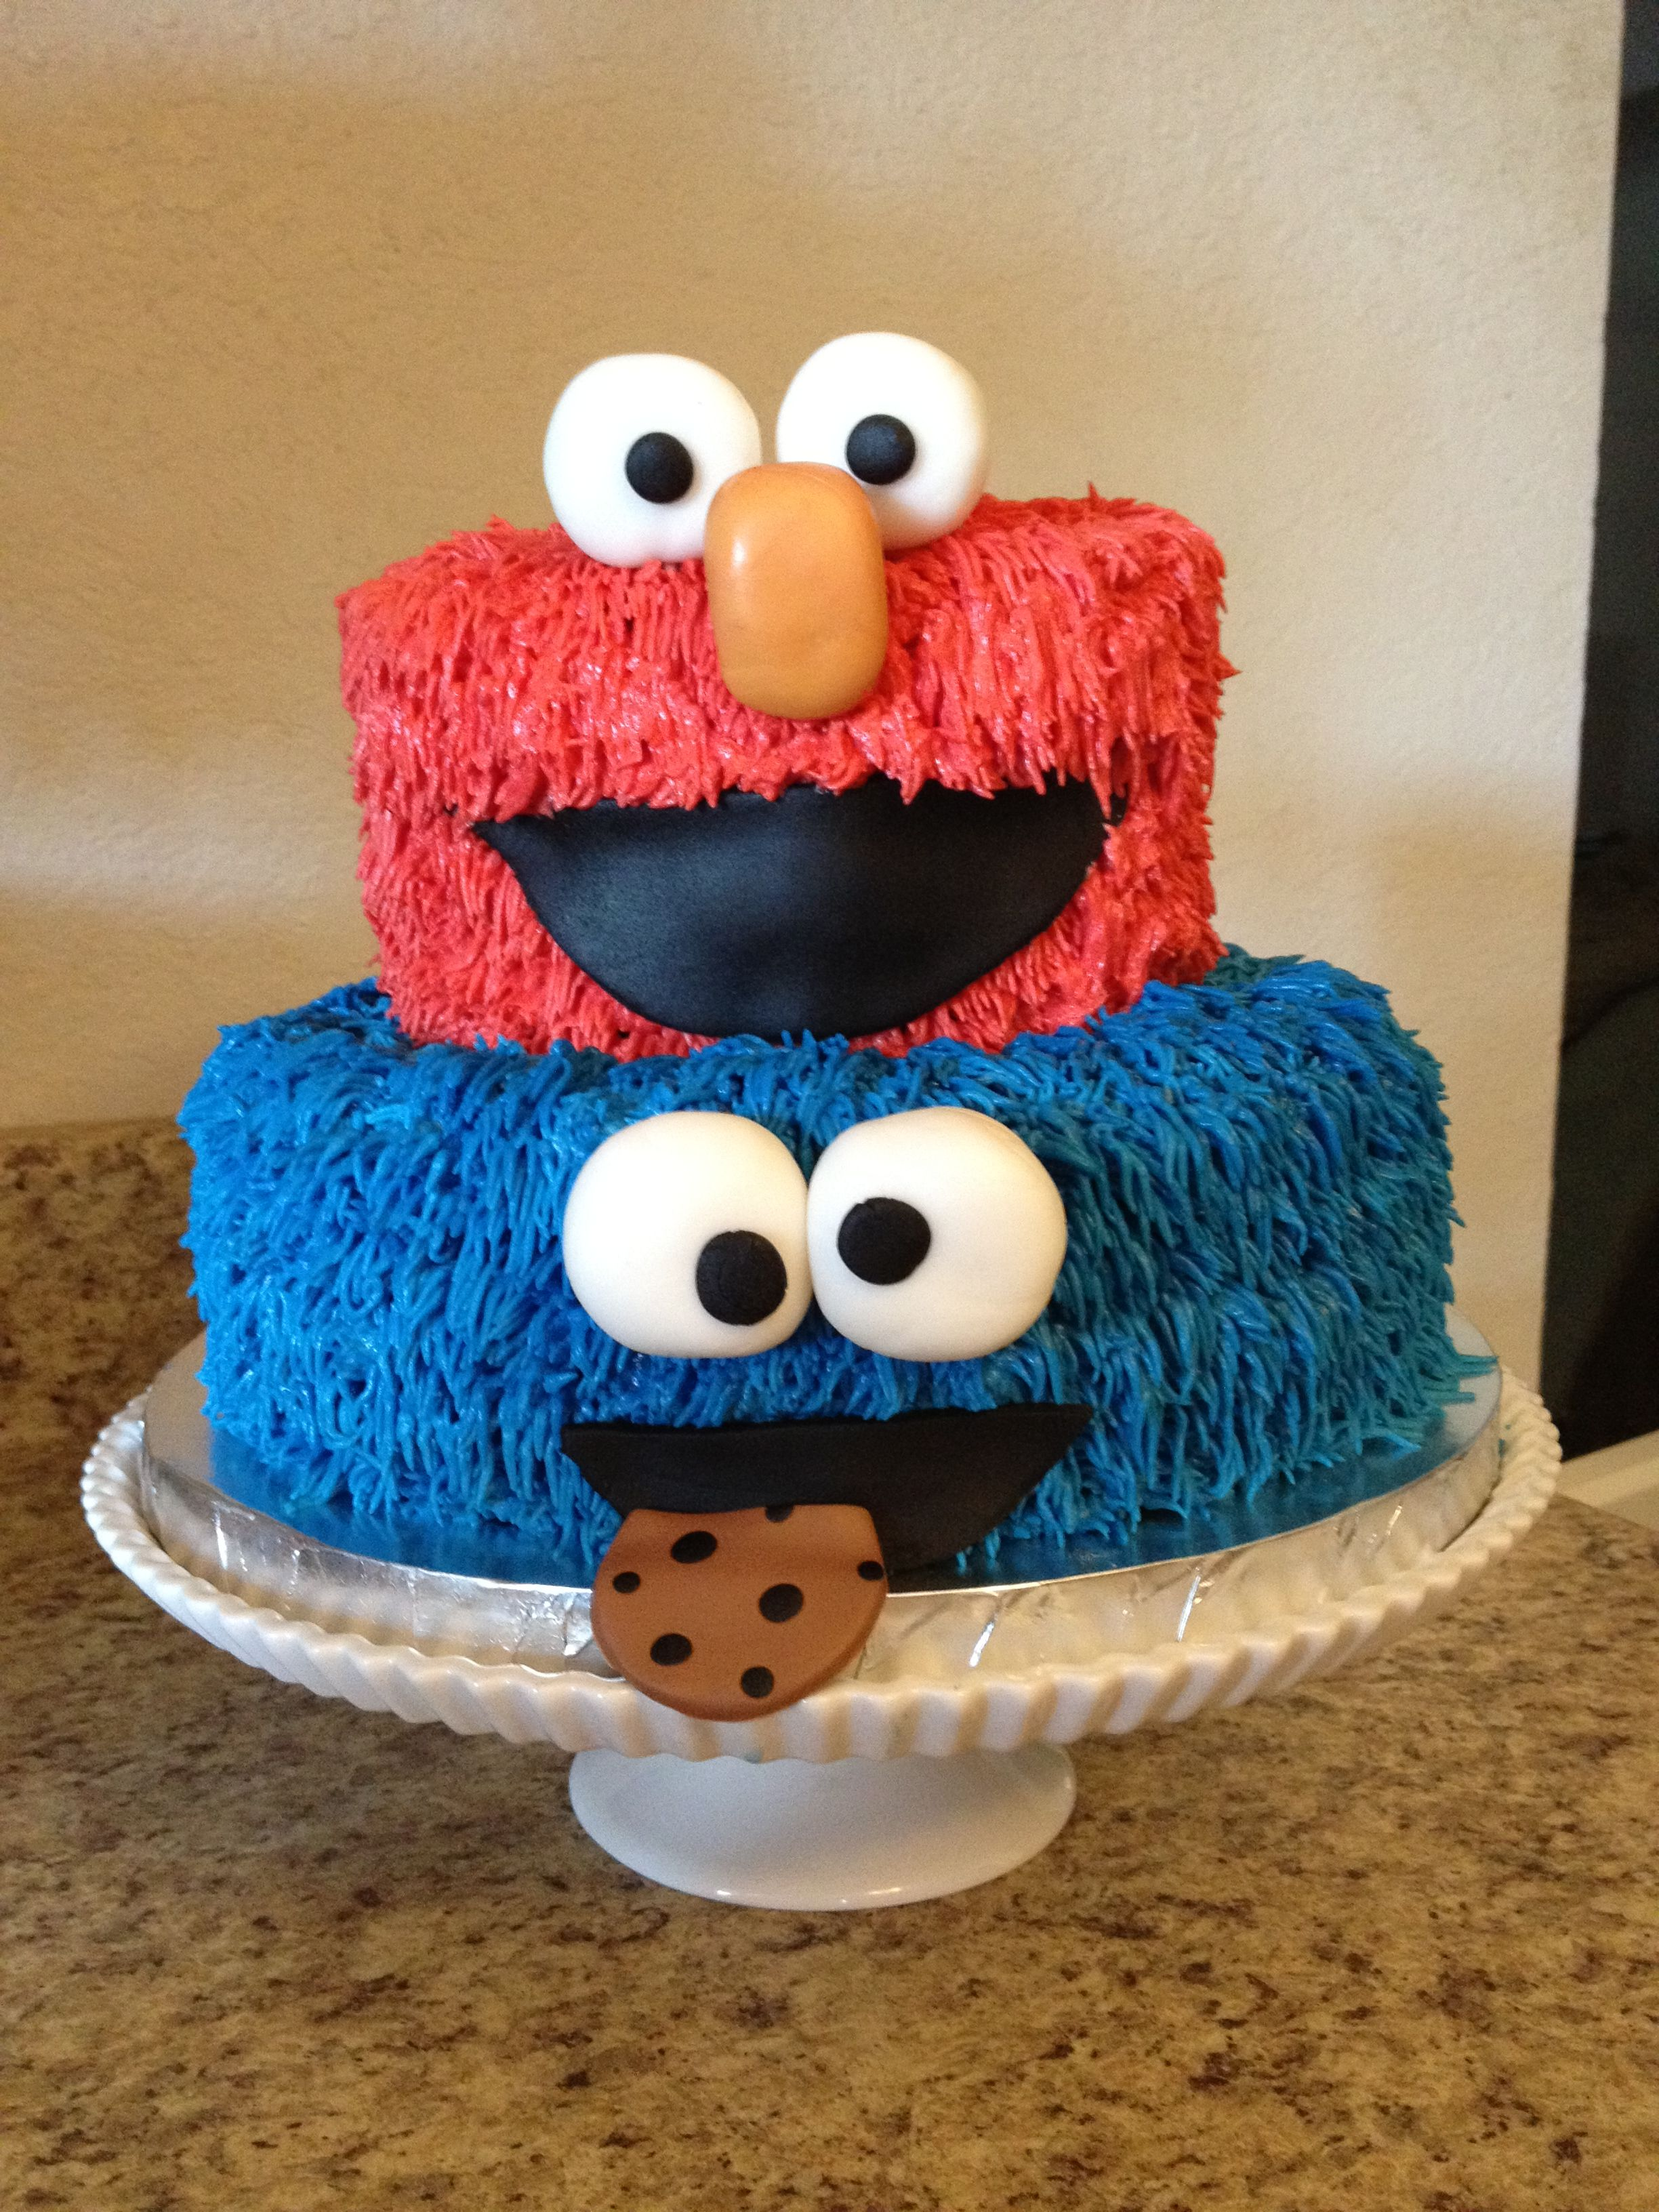 Theretroinc On Etsy In 2019 Cupcakes Monster Birthday Cakes